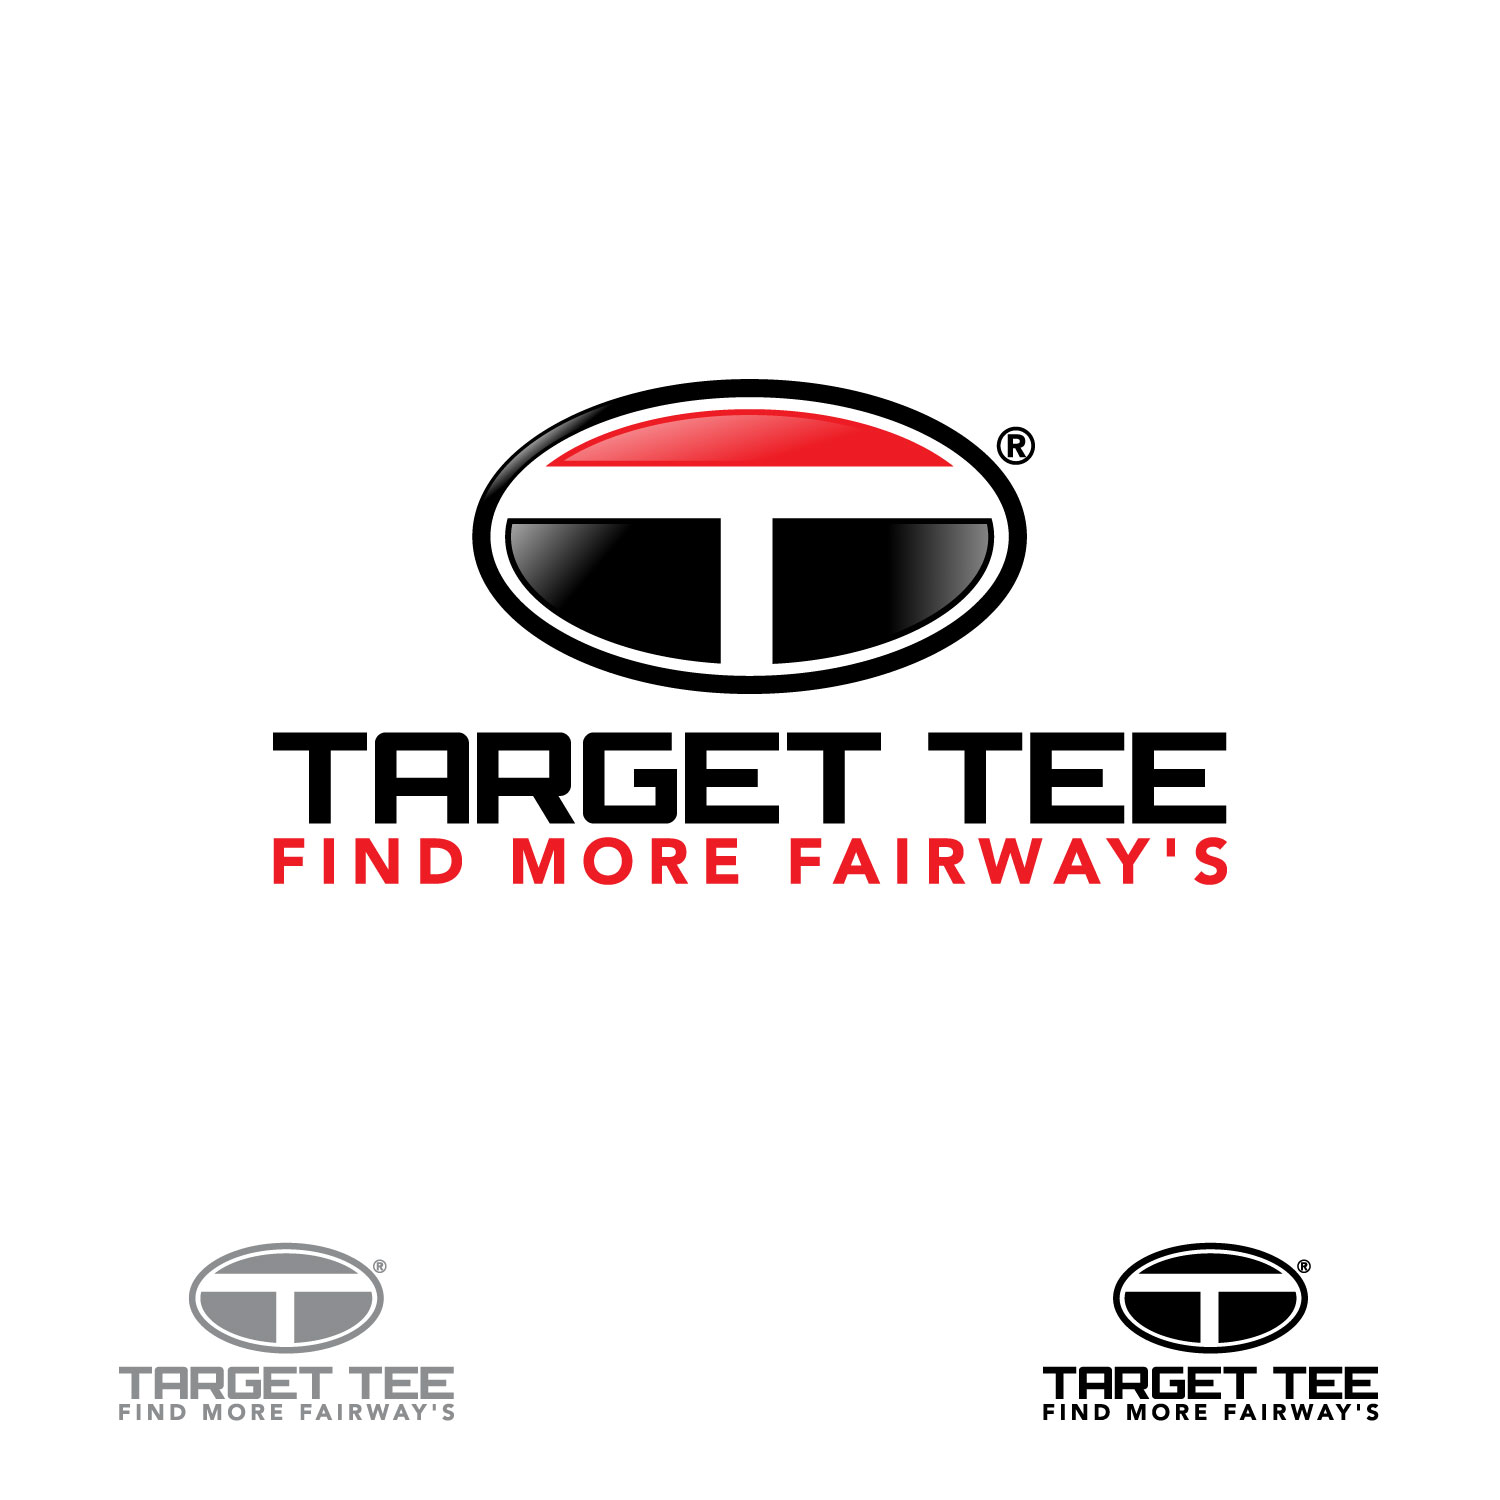 Logo Design by lagalag - Entry No. 47 in the Logo Design Contest Imaginative Logo Design for TARGET-TEE.